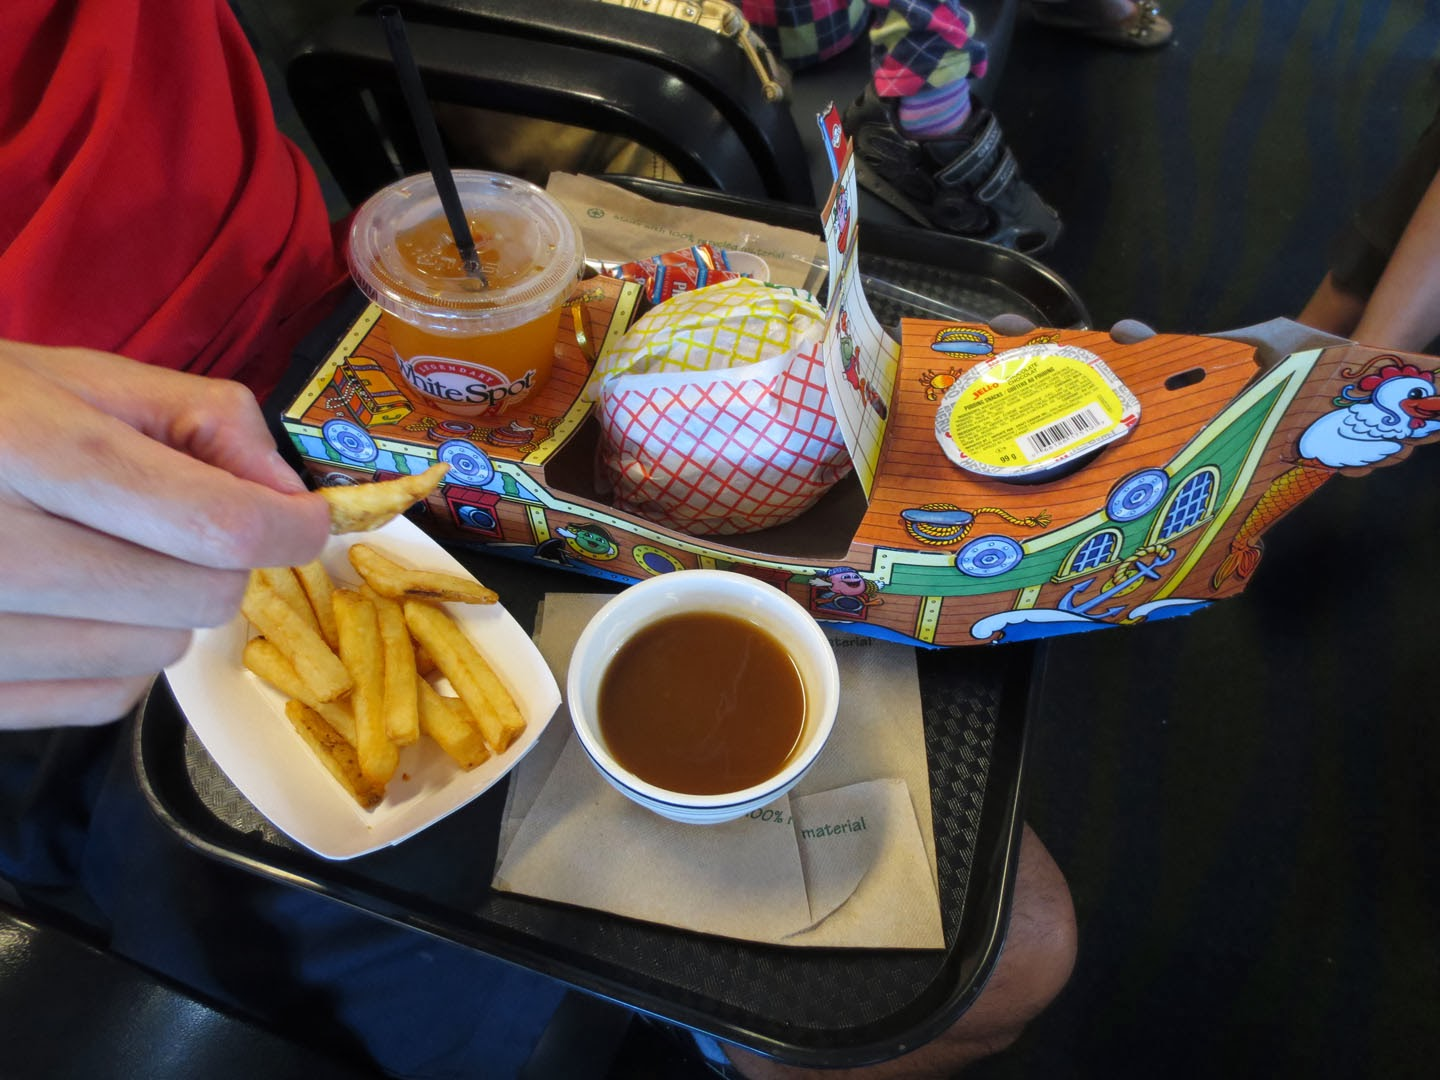 Pirate Pak meal, BC Ferries